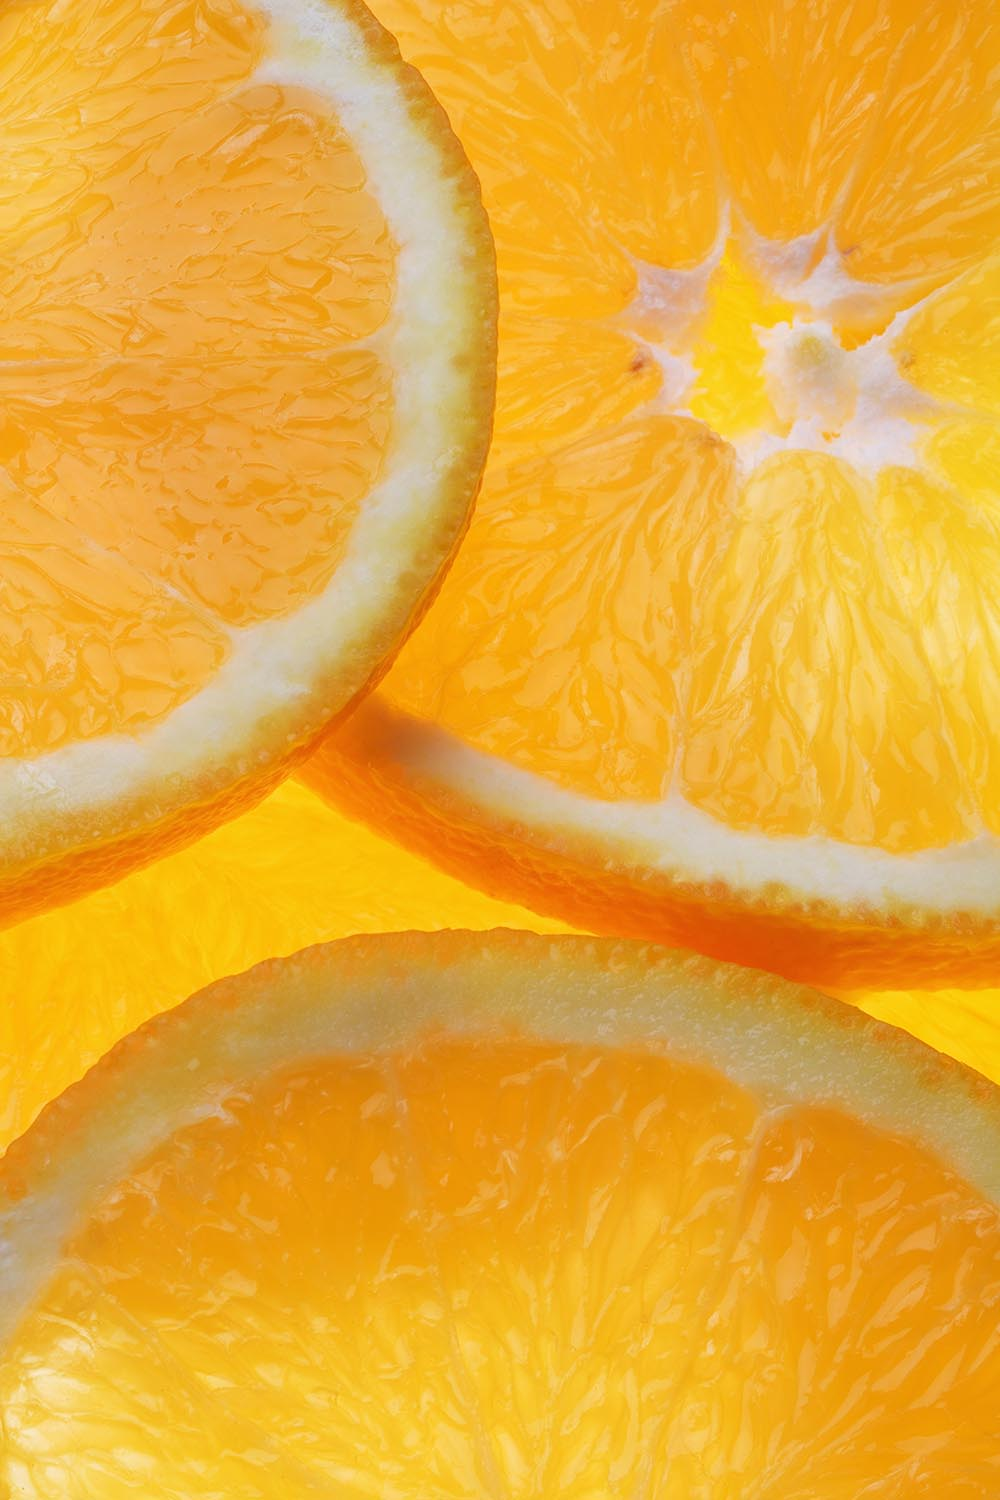 Free stock photo Orange slices close up